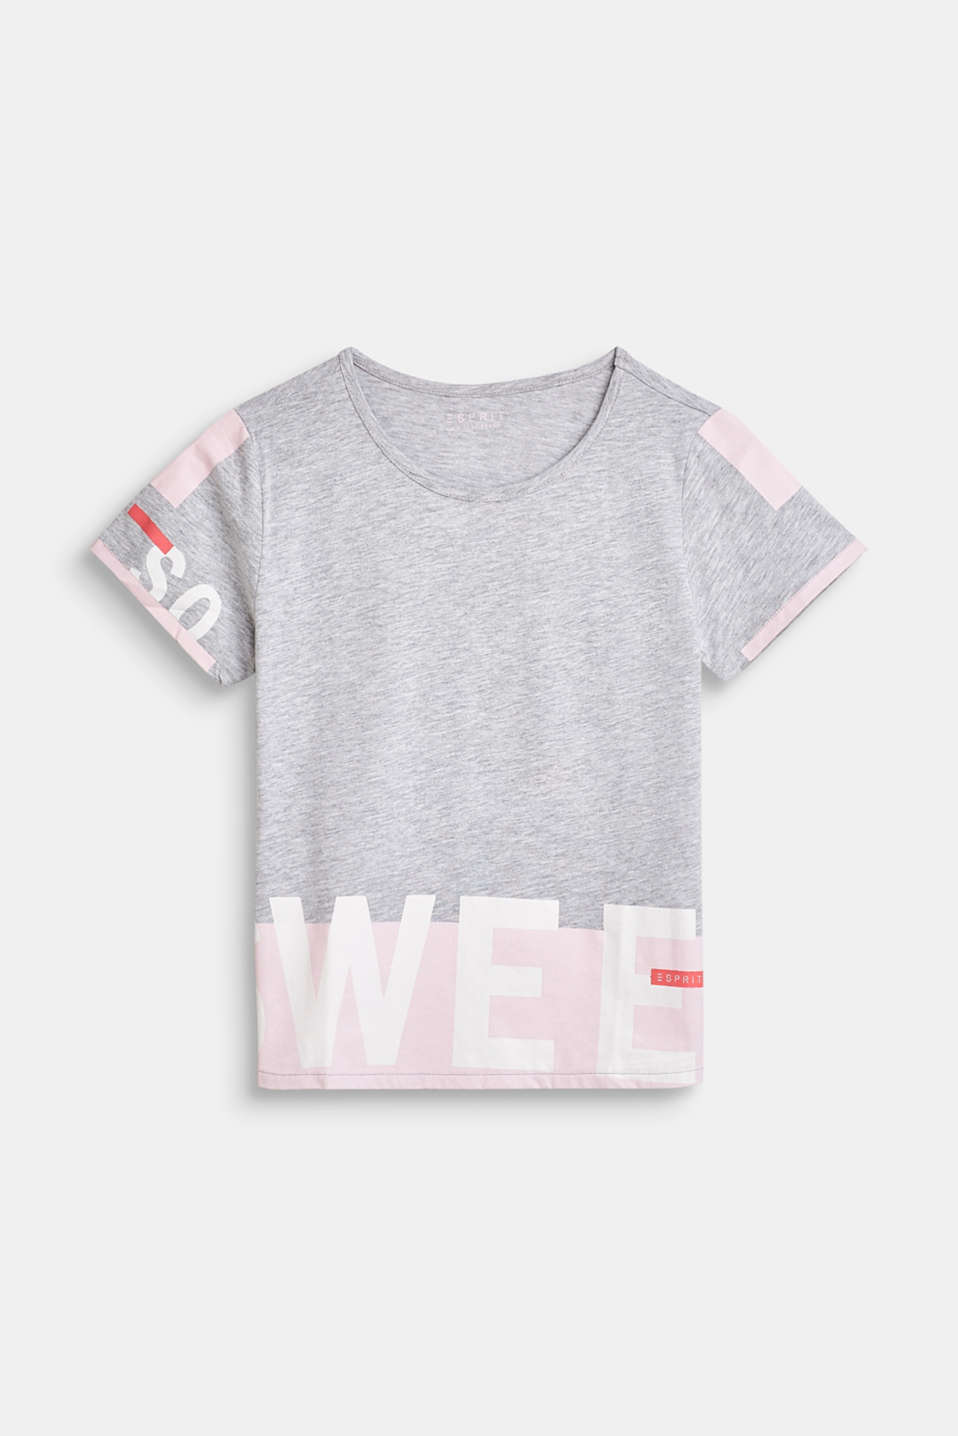 Esprit - Melange top with printed lettering